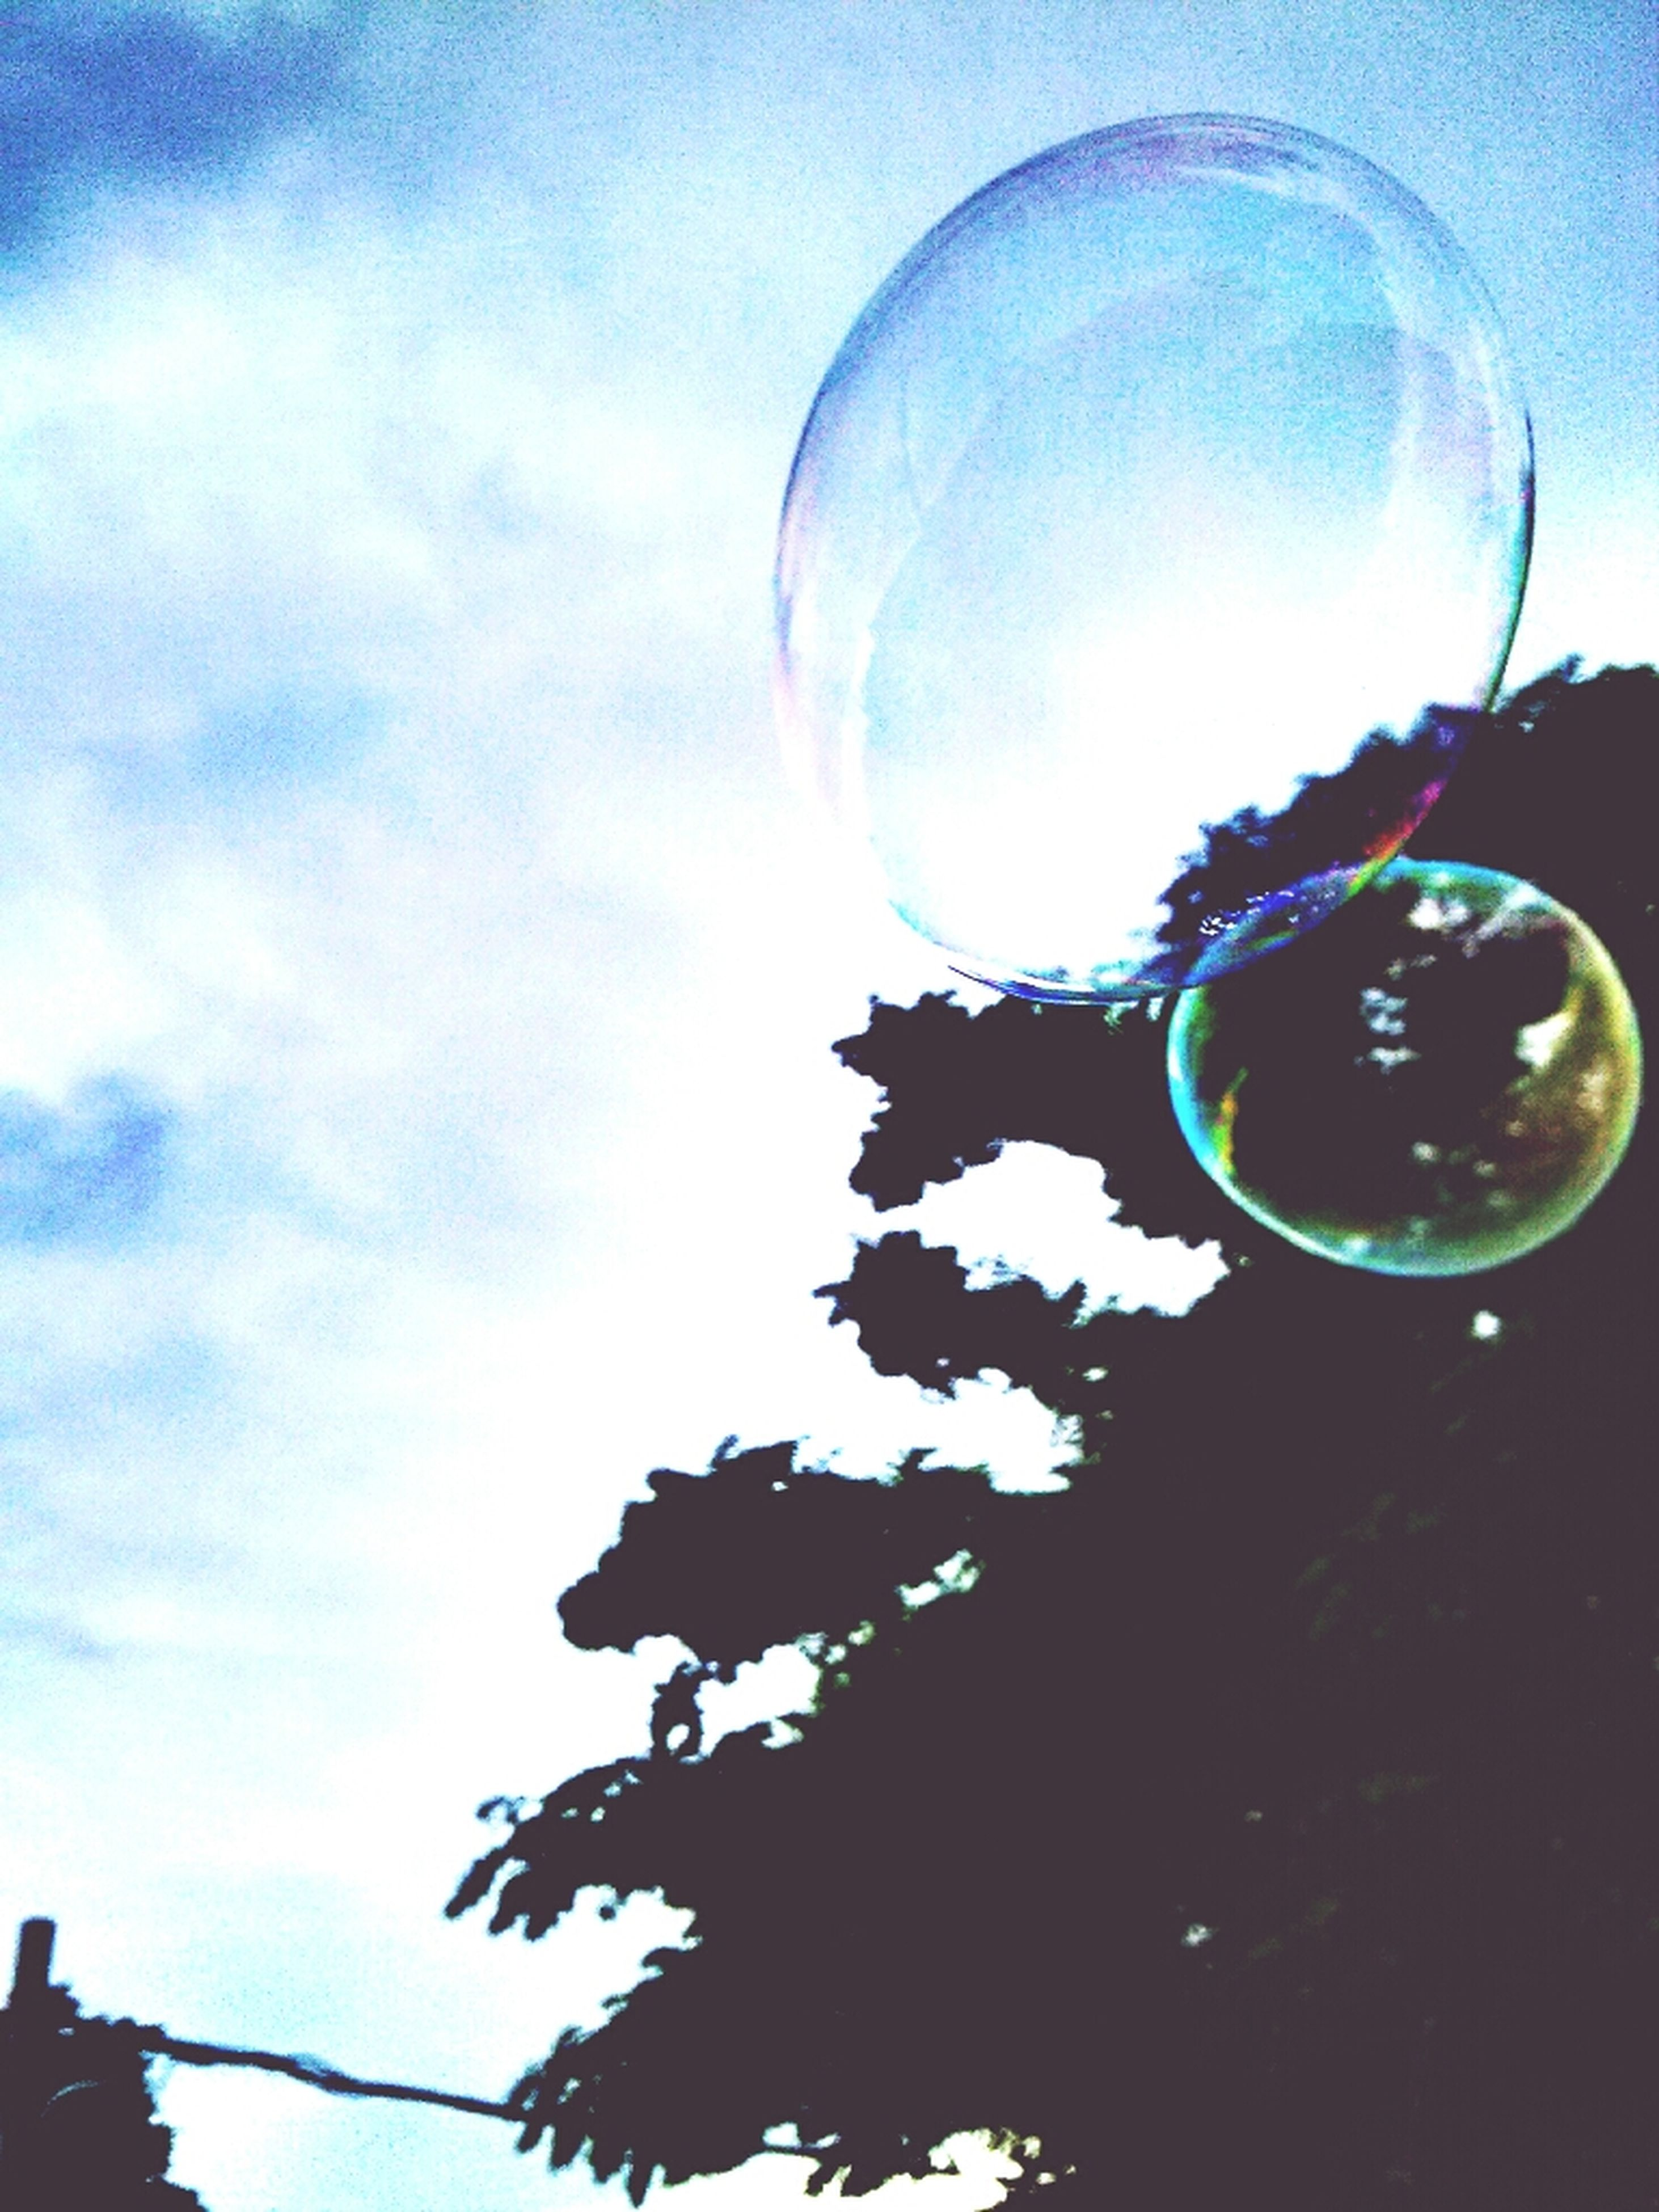 low angle view, sky, blue, sphere, glass - material, circle, transparent, reflection, cloud - sky, close-up, no people, lighting equipment, bubble, nature, fragility, mid-air, outdoors, illuminated, tree, day